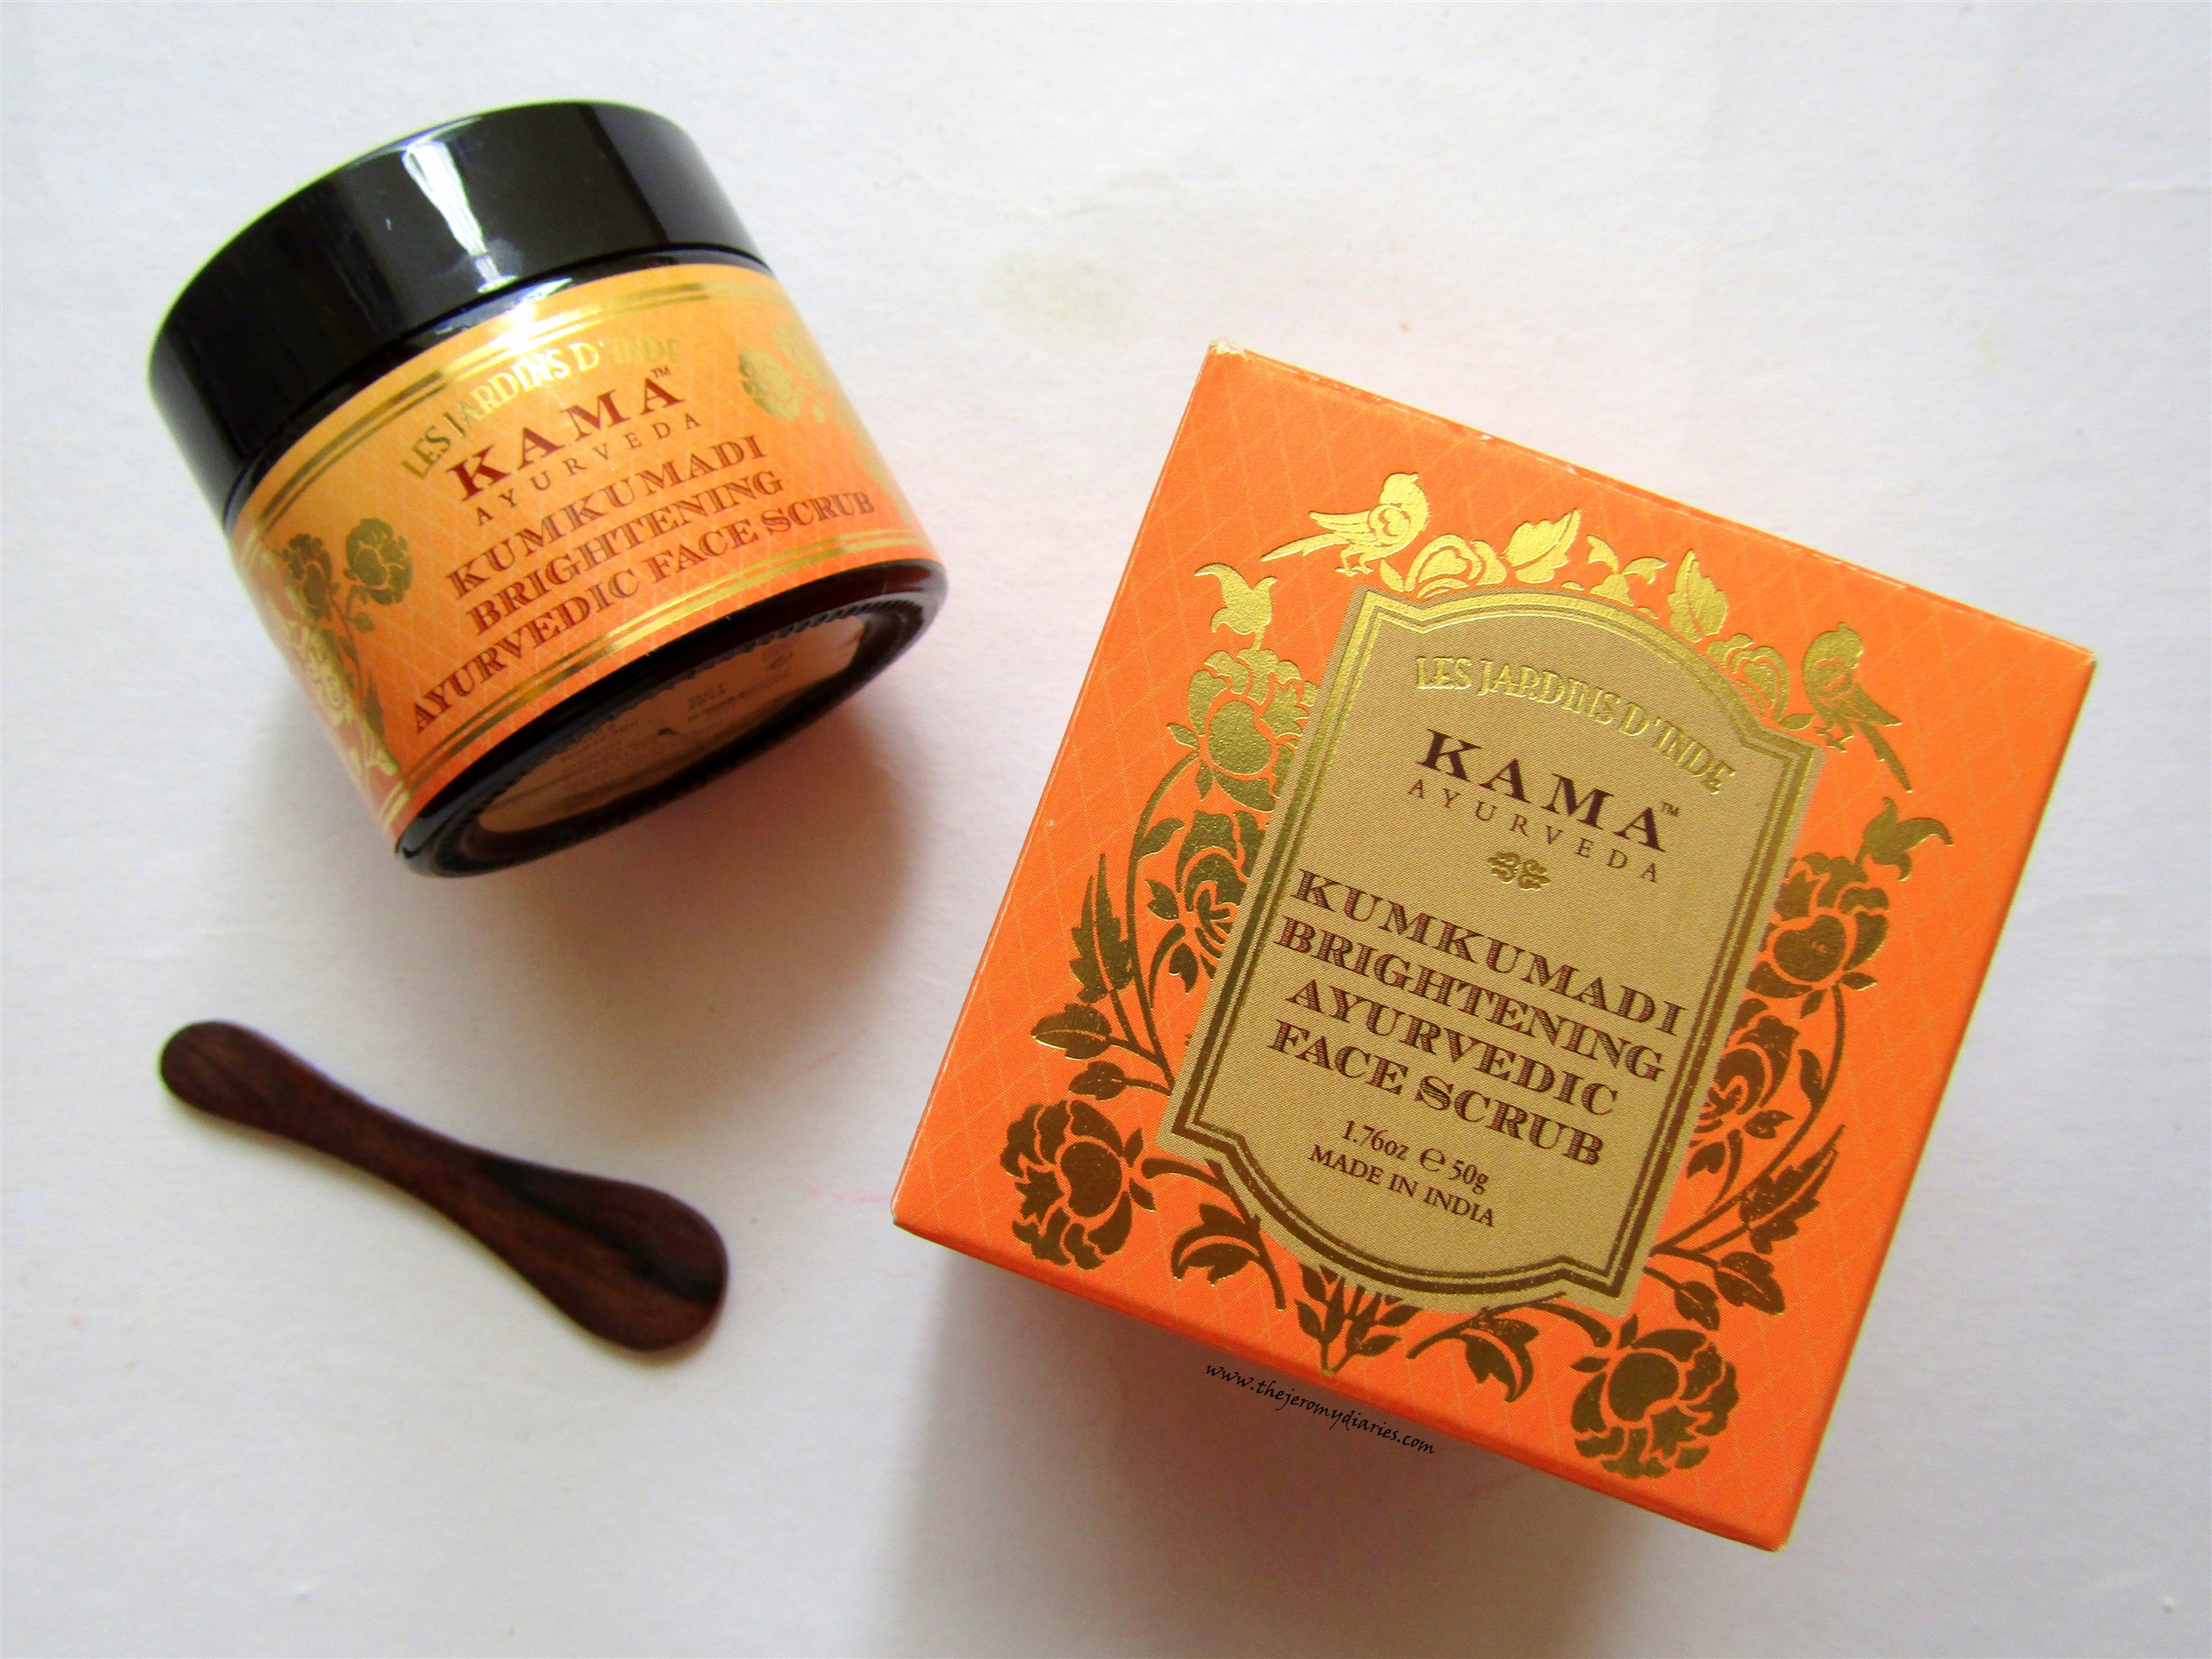 kama ayurveda kumkumadi face scrub review the jeromy diaries